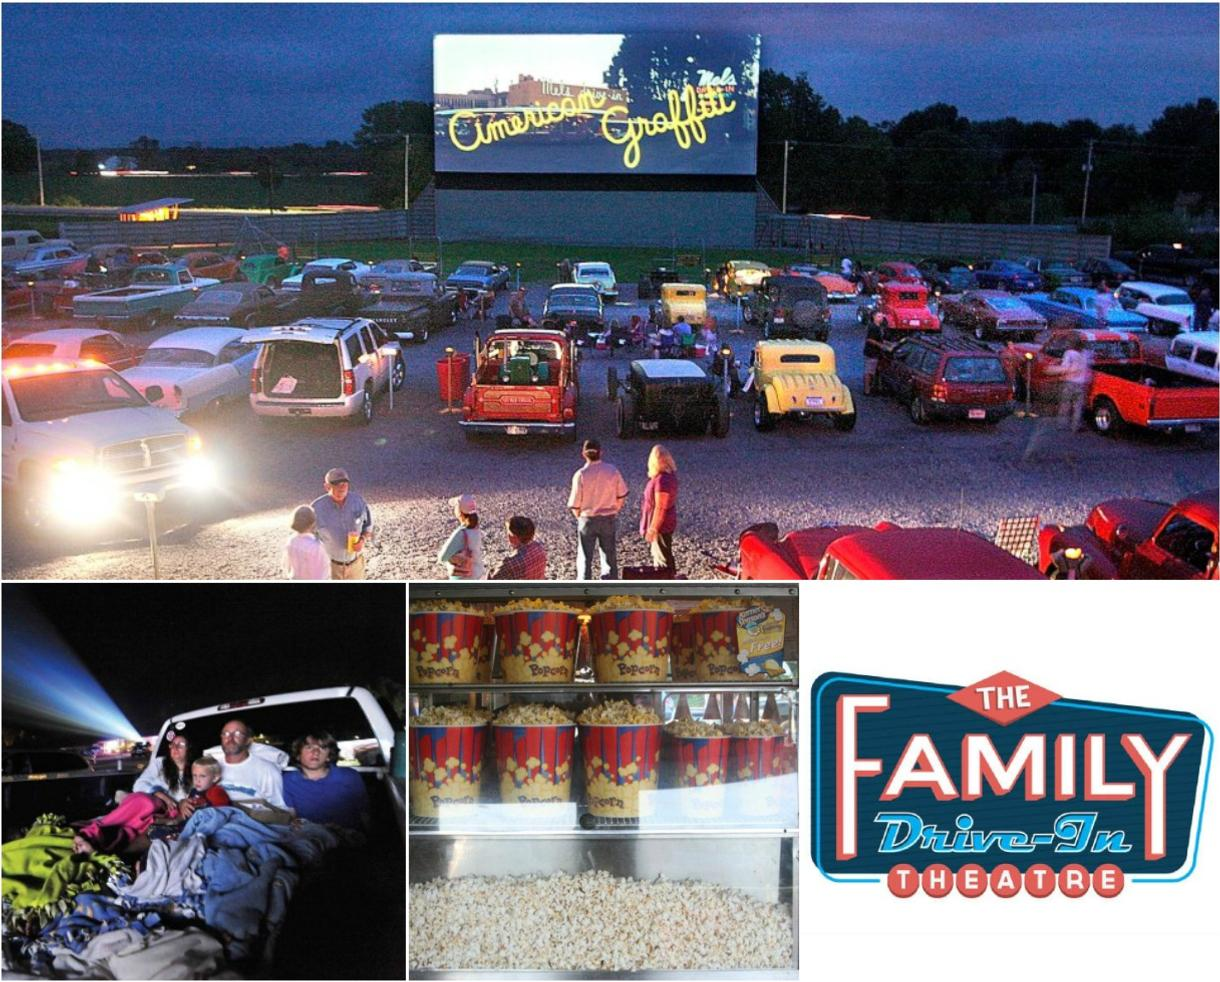 $15 for The Family Drive-In Theatre - 2 Adult Admissions, Popcorn & Drinks! ($25 Value - 40% Off)